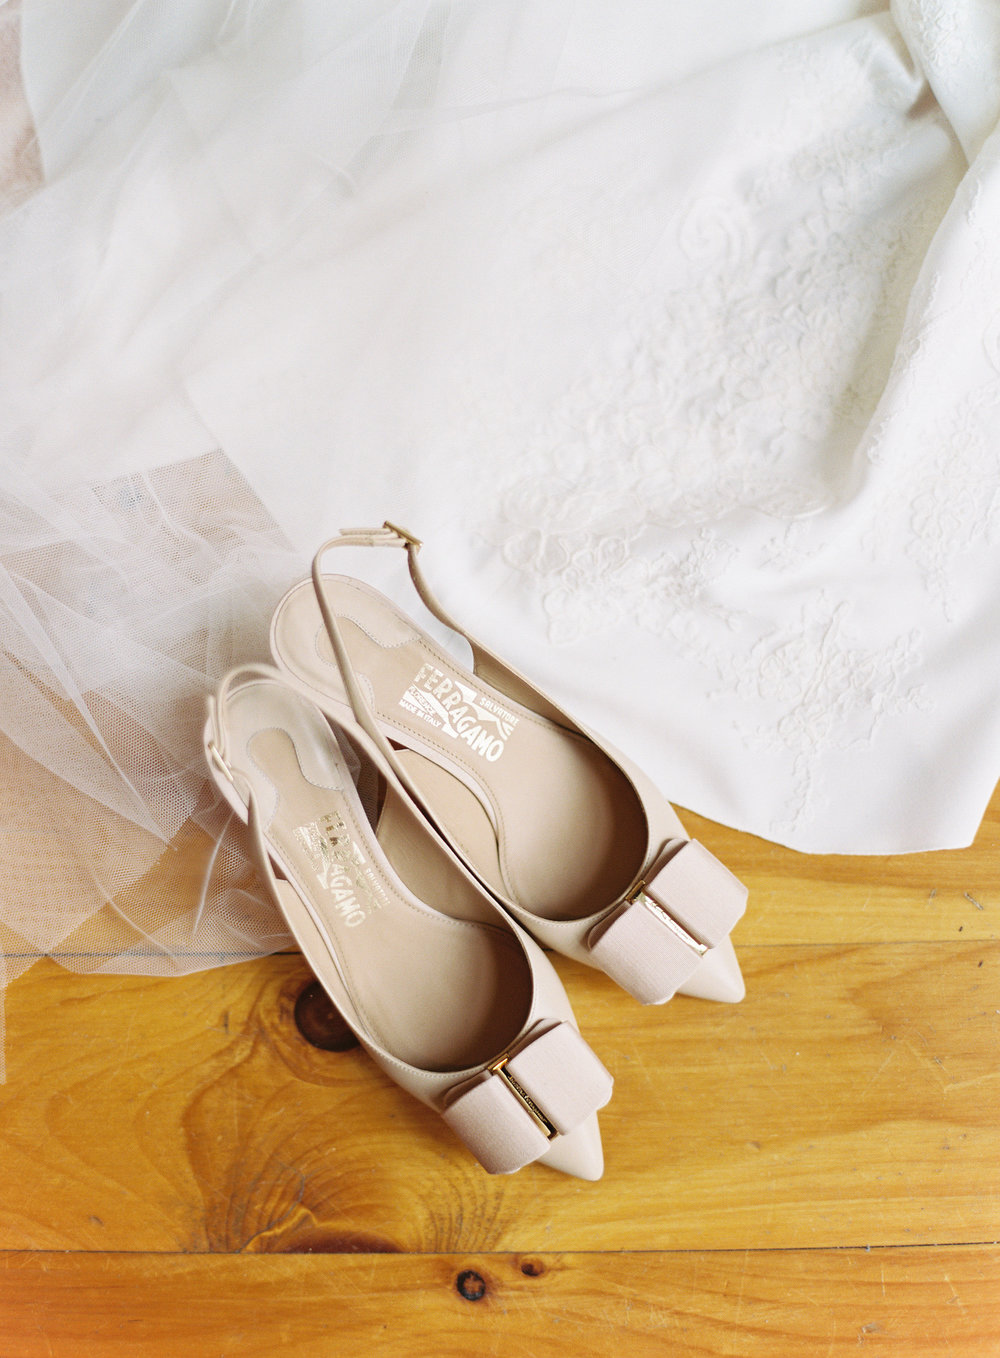 Ferragamo Wedding Heels